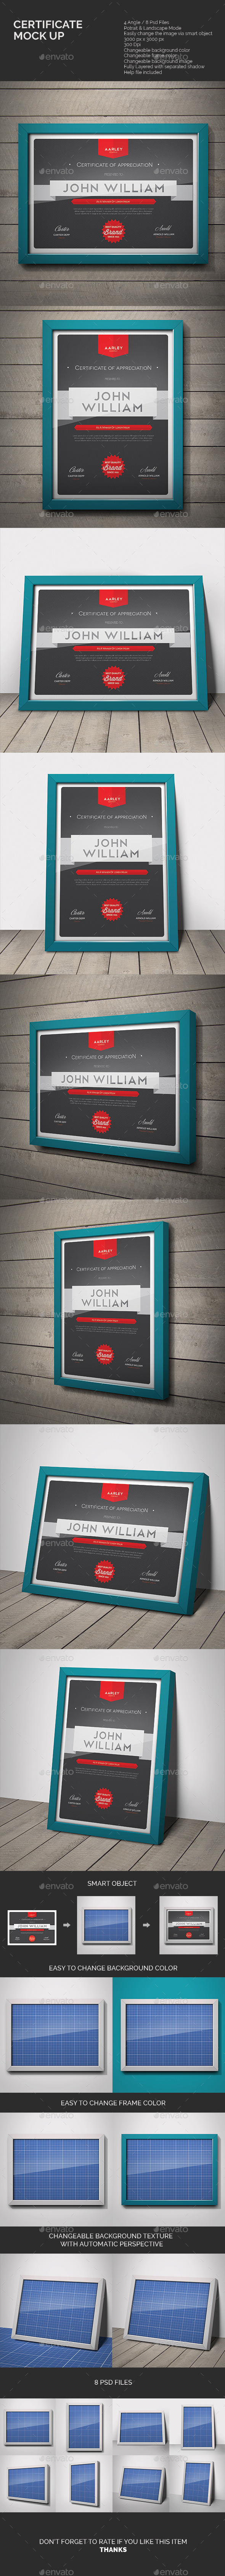 GraphicRiver Certificate Mock-up 10563422